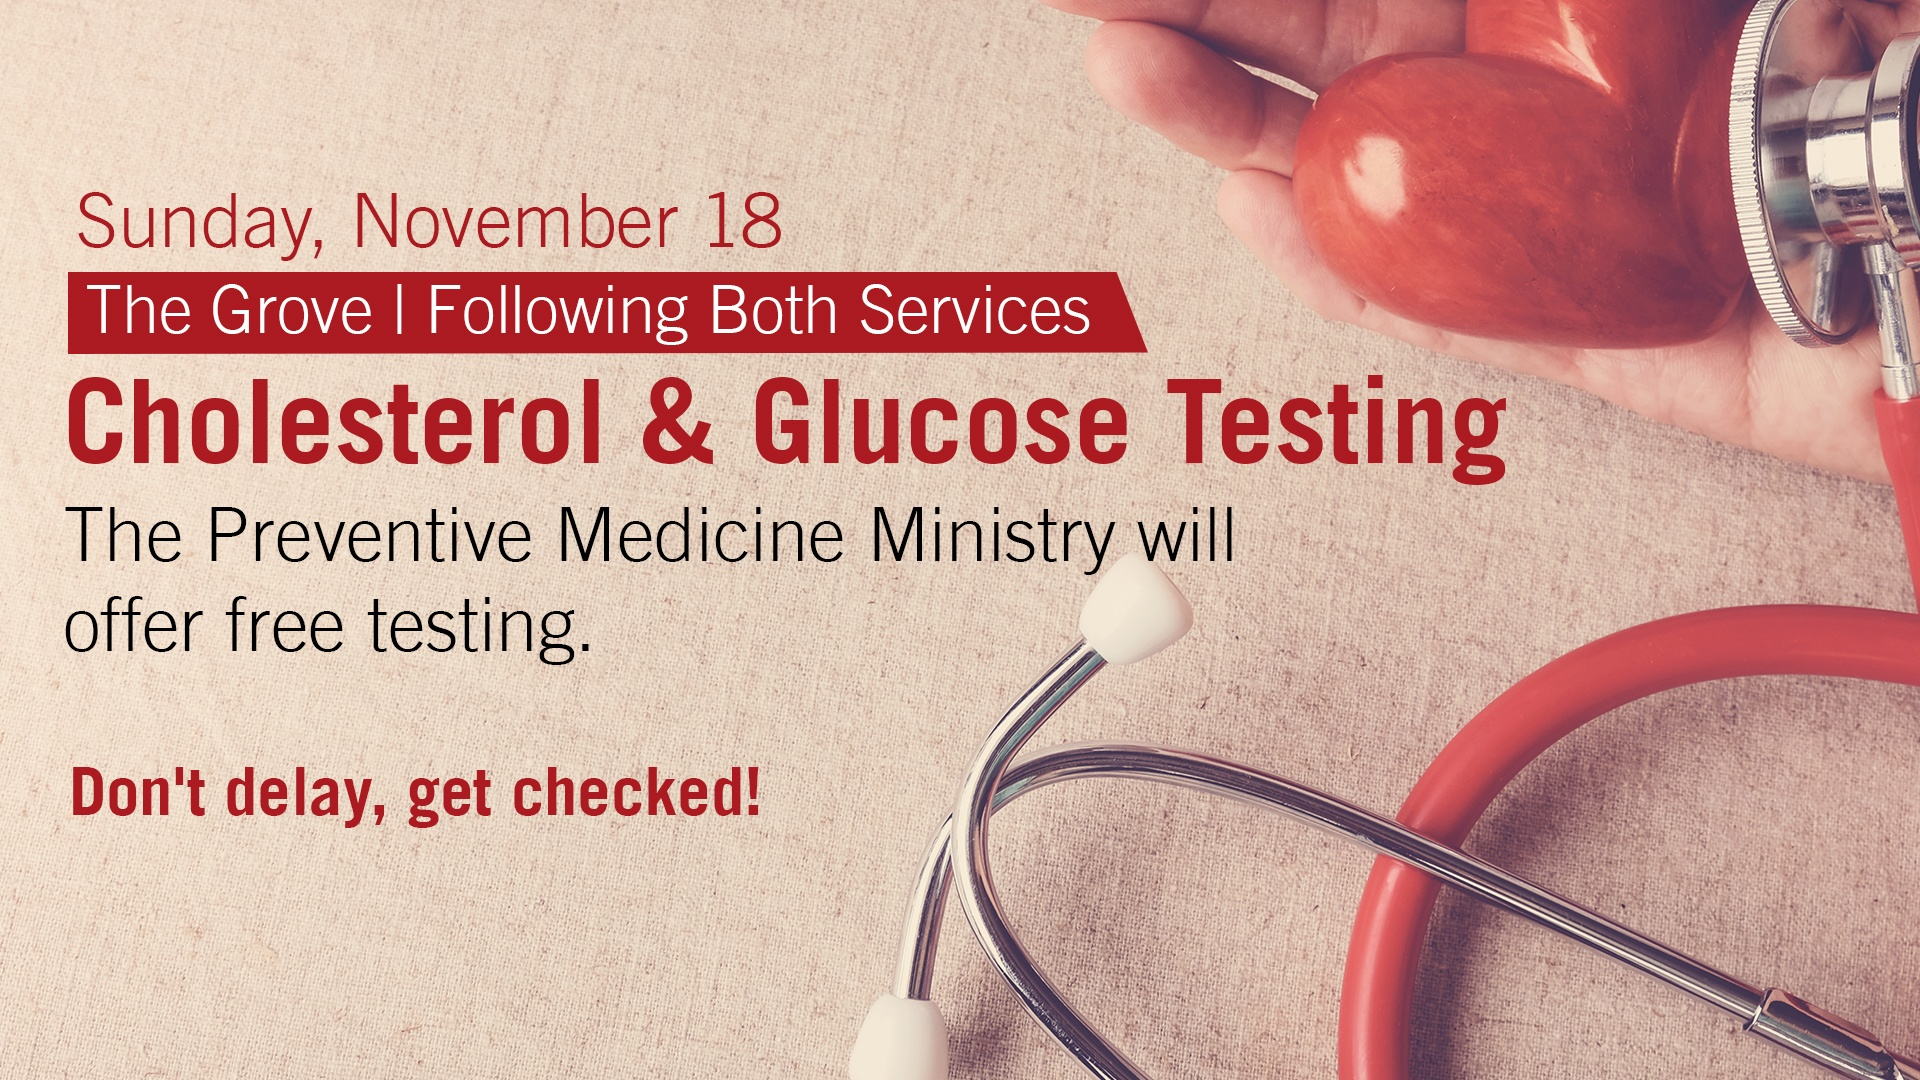 Cholesterol and glucose screening